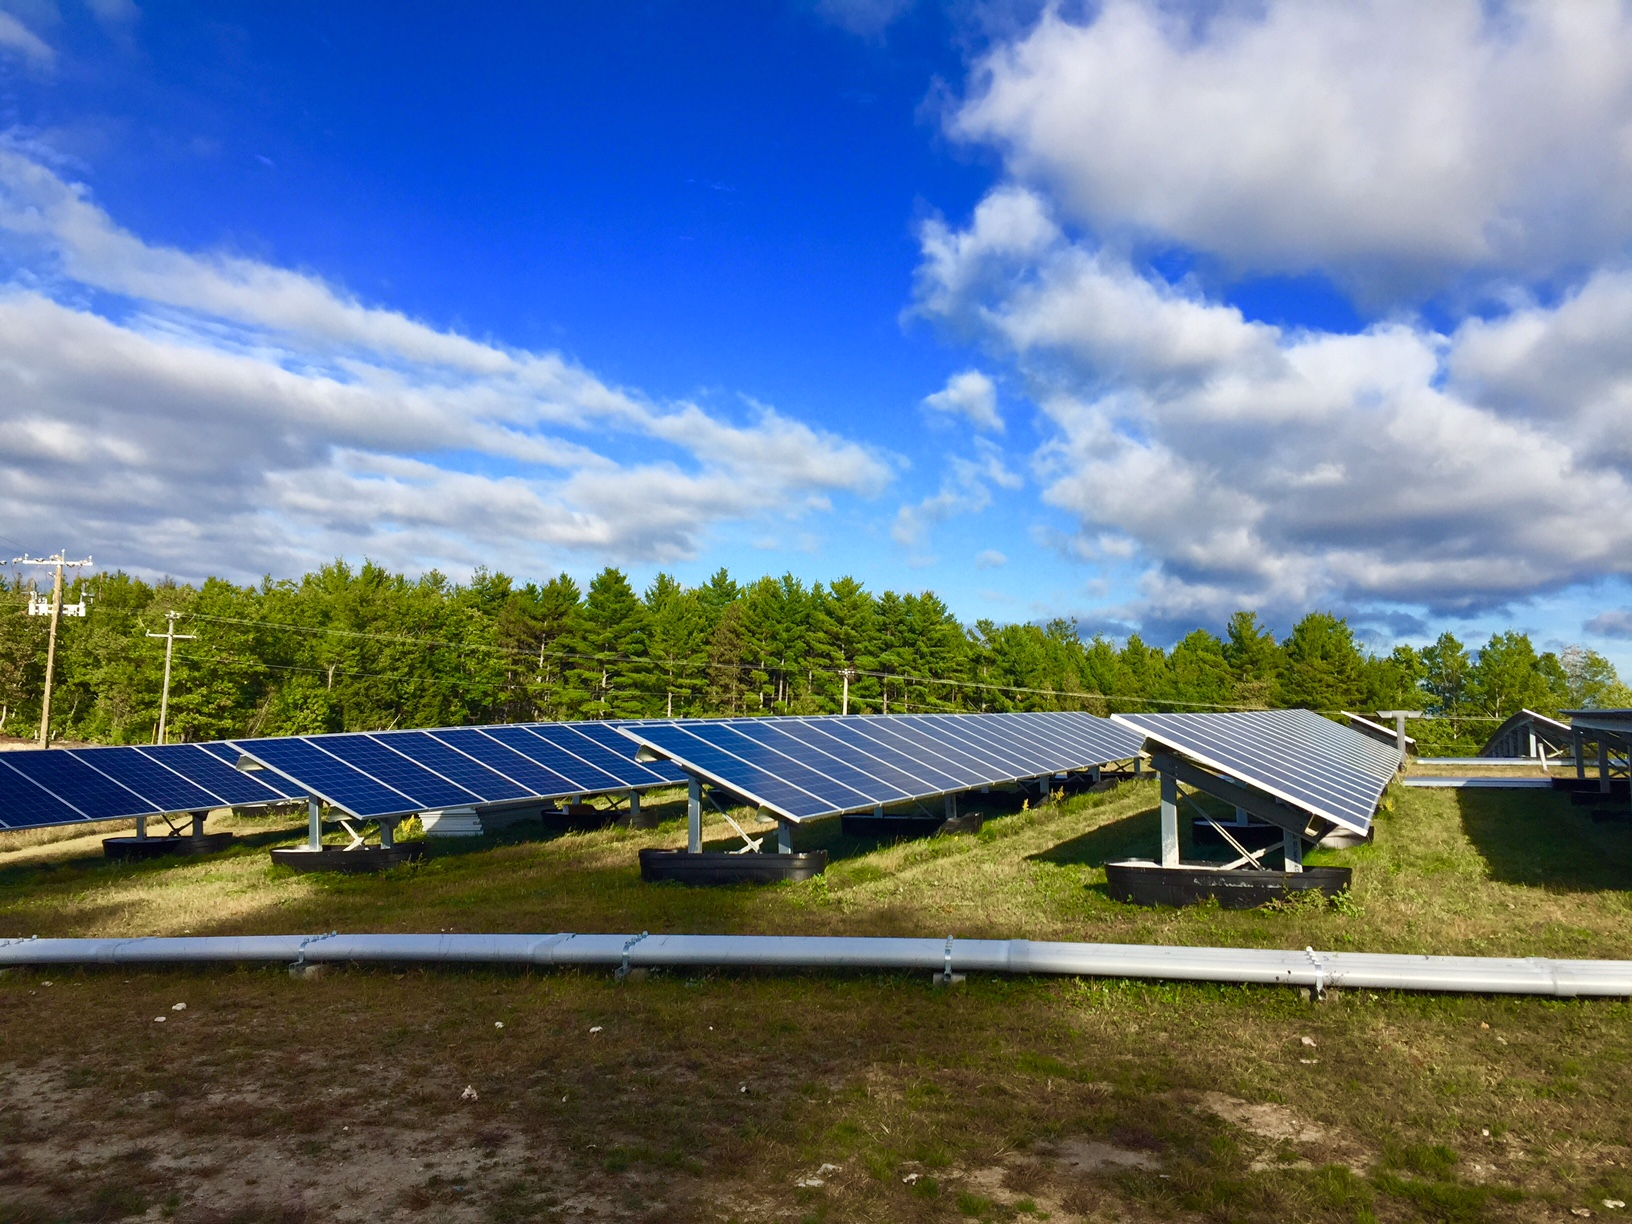 Solar field renewable energy project